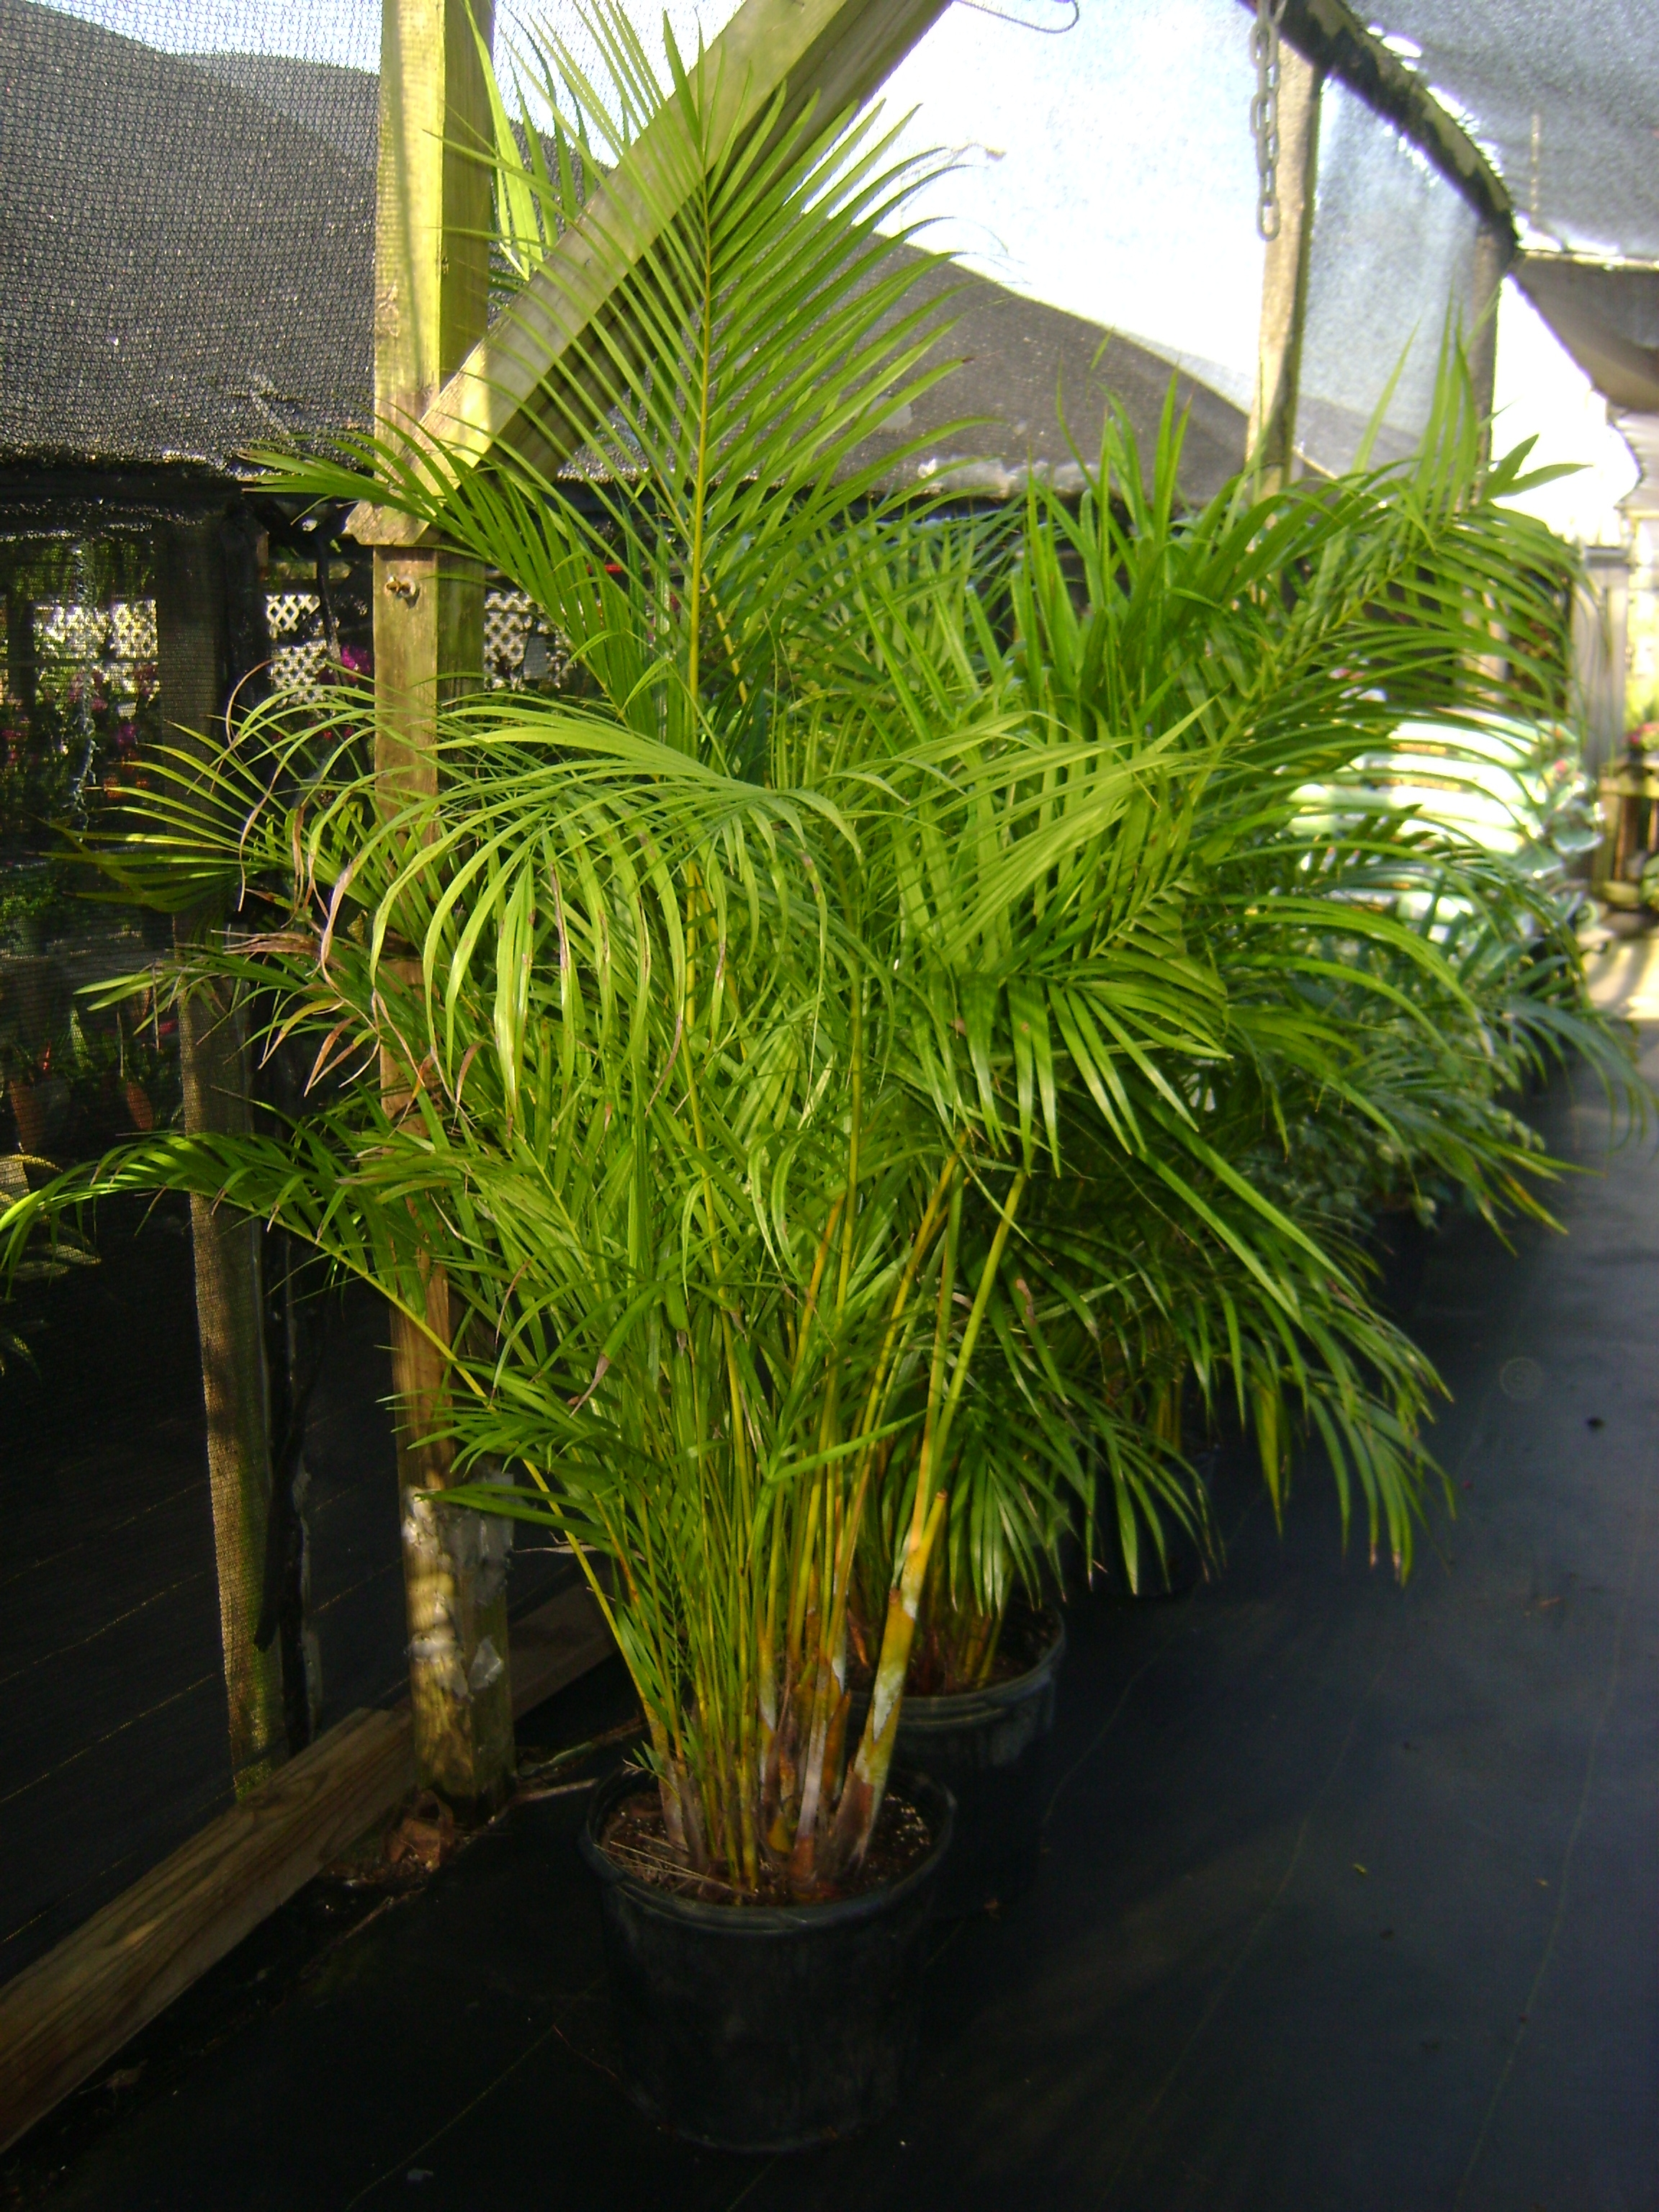 Buy areca palm trees in miami ft lauderdale kendall for Pictures of areca palm plants